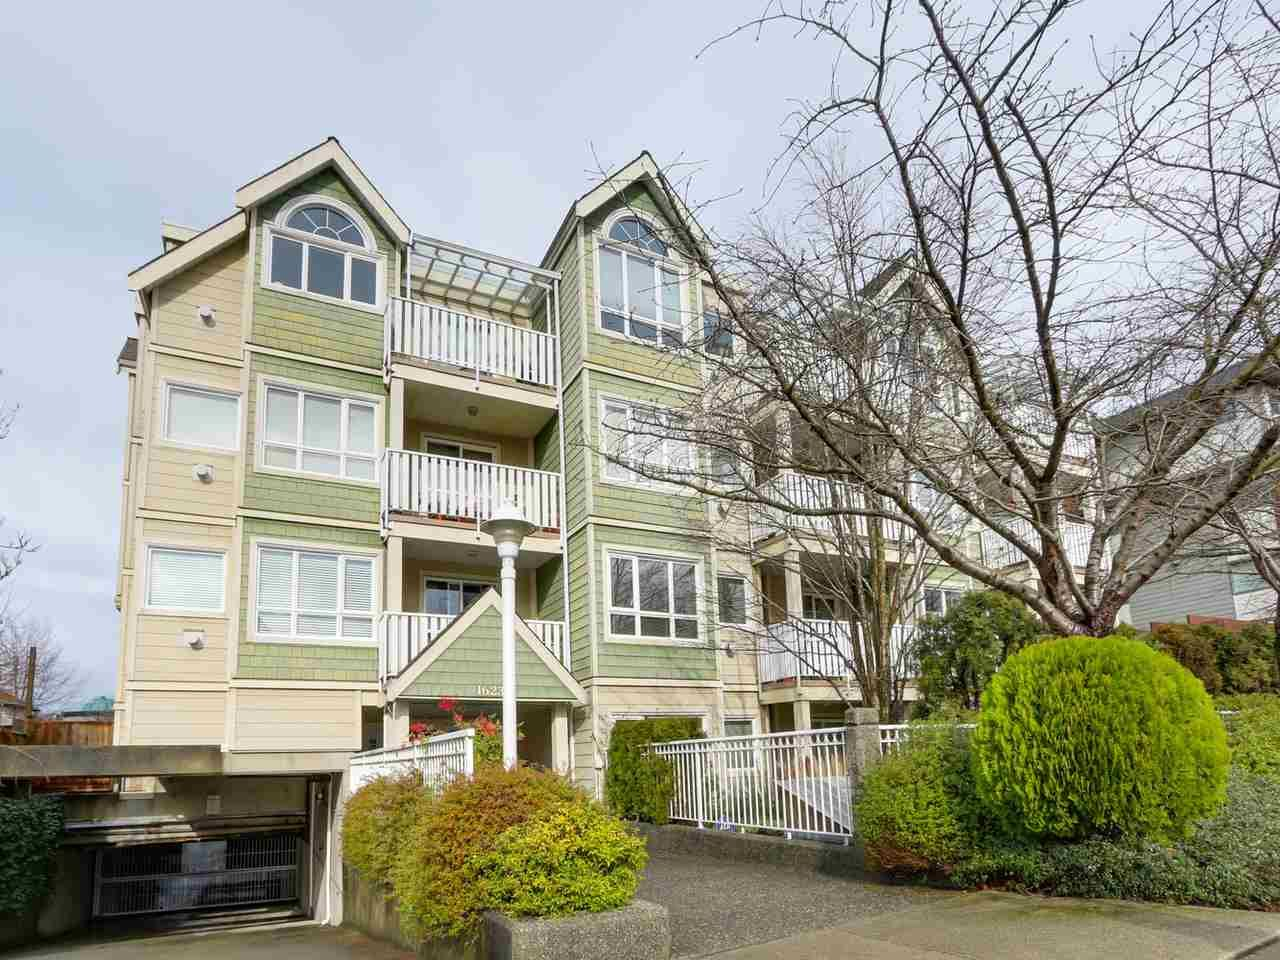 Main Photo: 303 1623 E 2ND AVENUE in Vancouver: Grandview VE Condo for sale (Vancouver East)  : MLS®# R2036799